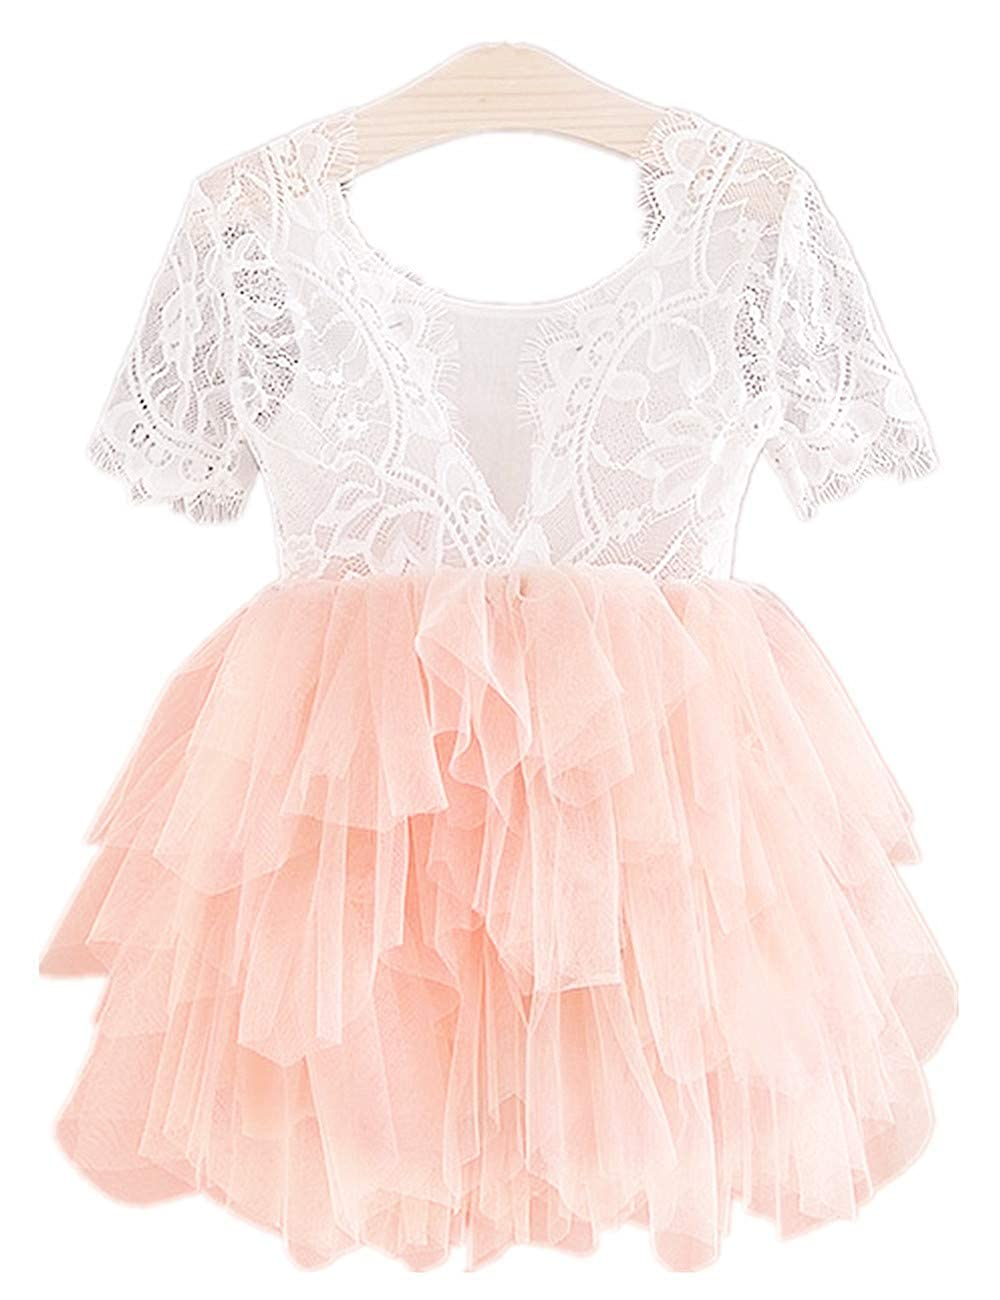 2Bunnies Girl Rose Lace Back A-Line Tutu Tulle Party Flower Girl Dresses